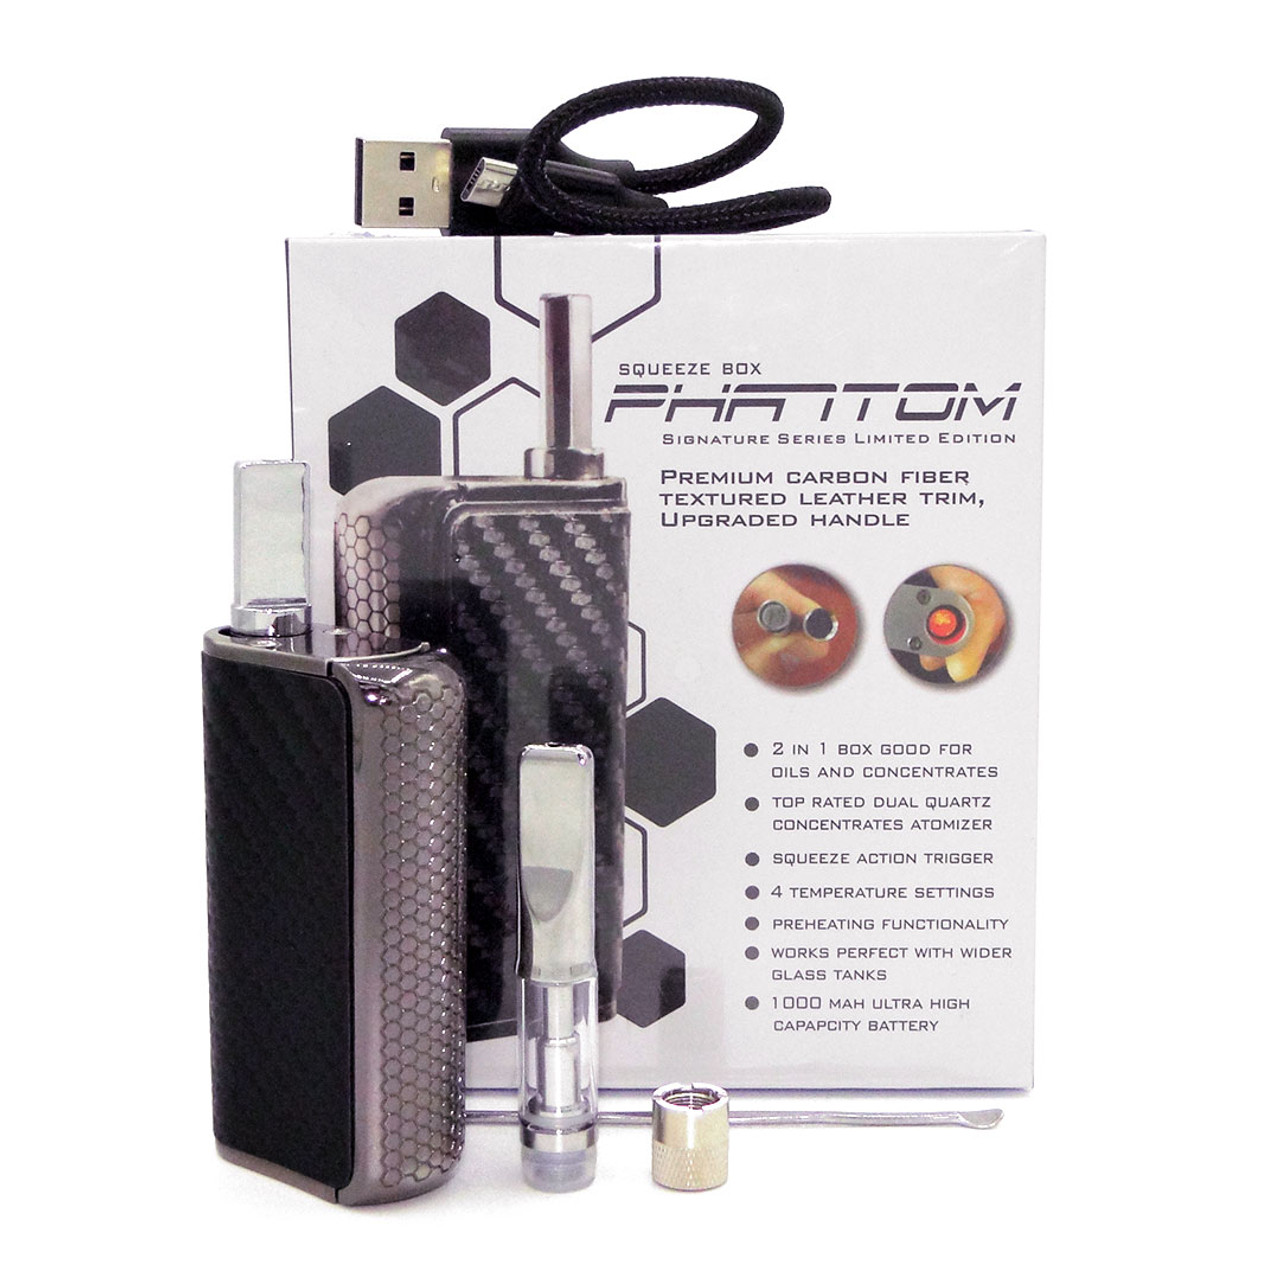 Phantom Signature 2 in 1 Oil & Wax Vaporizer Kit (Honey Stick)